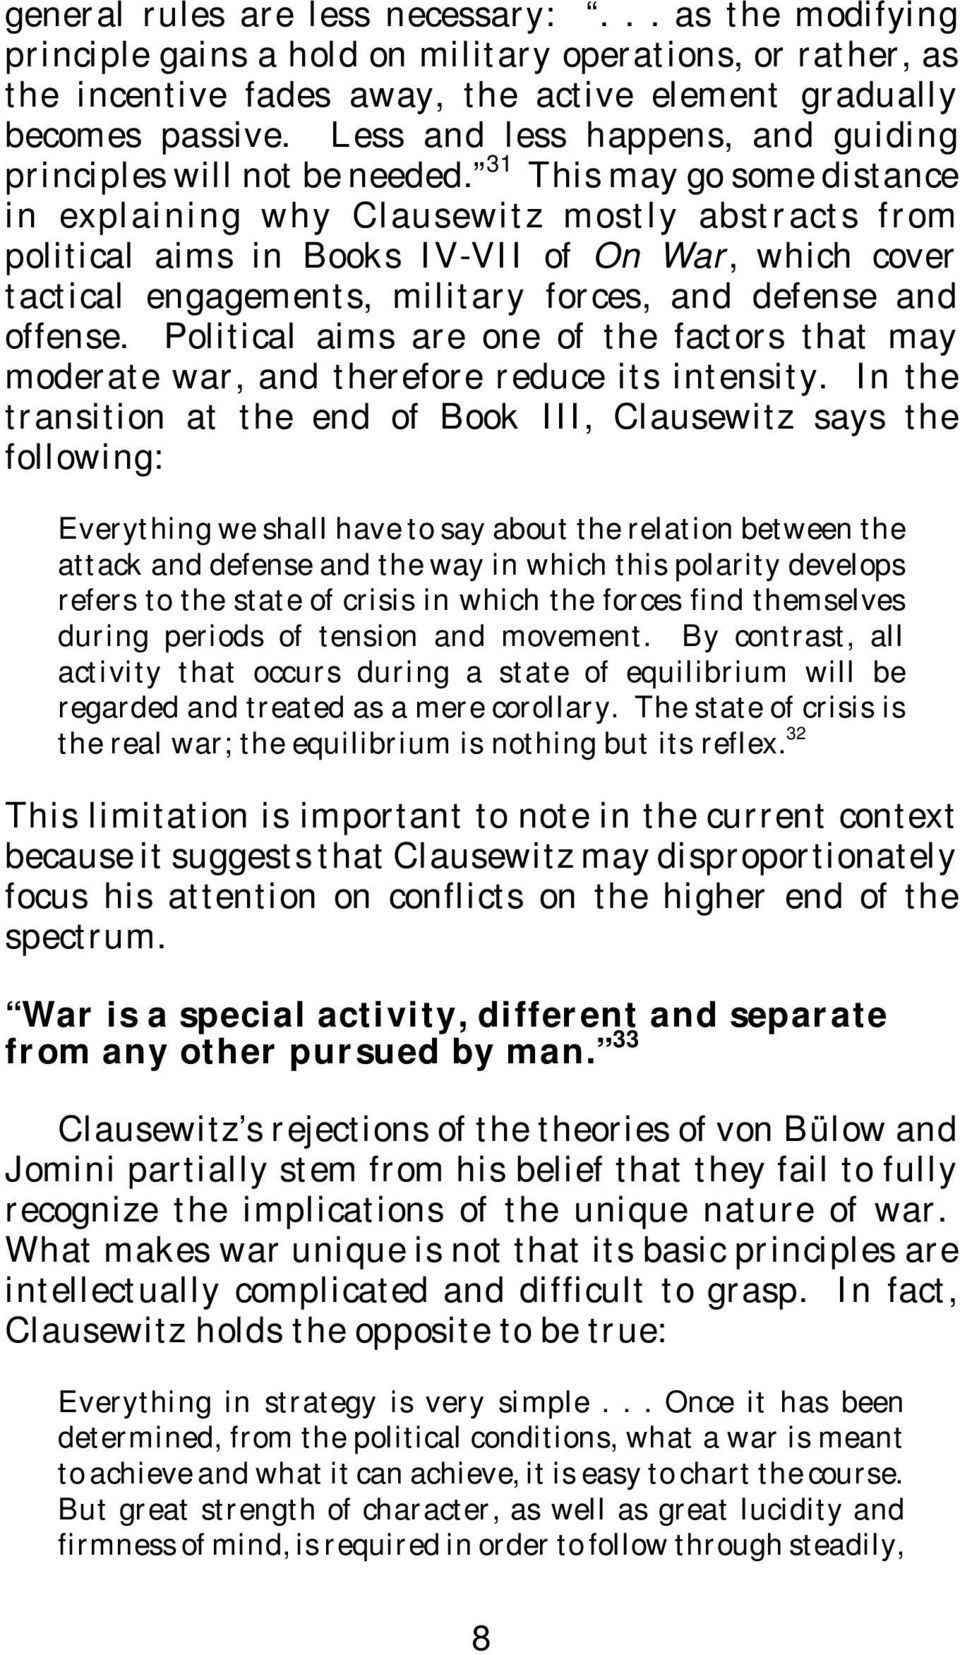 31 This may go some distance in explaining why Clausewitz mostly abstracts from political aims in Books IV-VII of On War, which cover tactical engagements, military forces, and defense and offense.